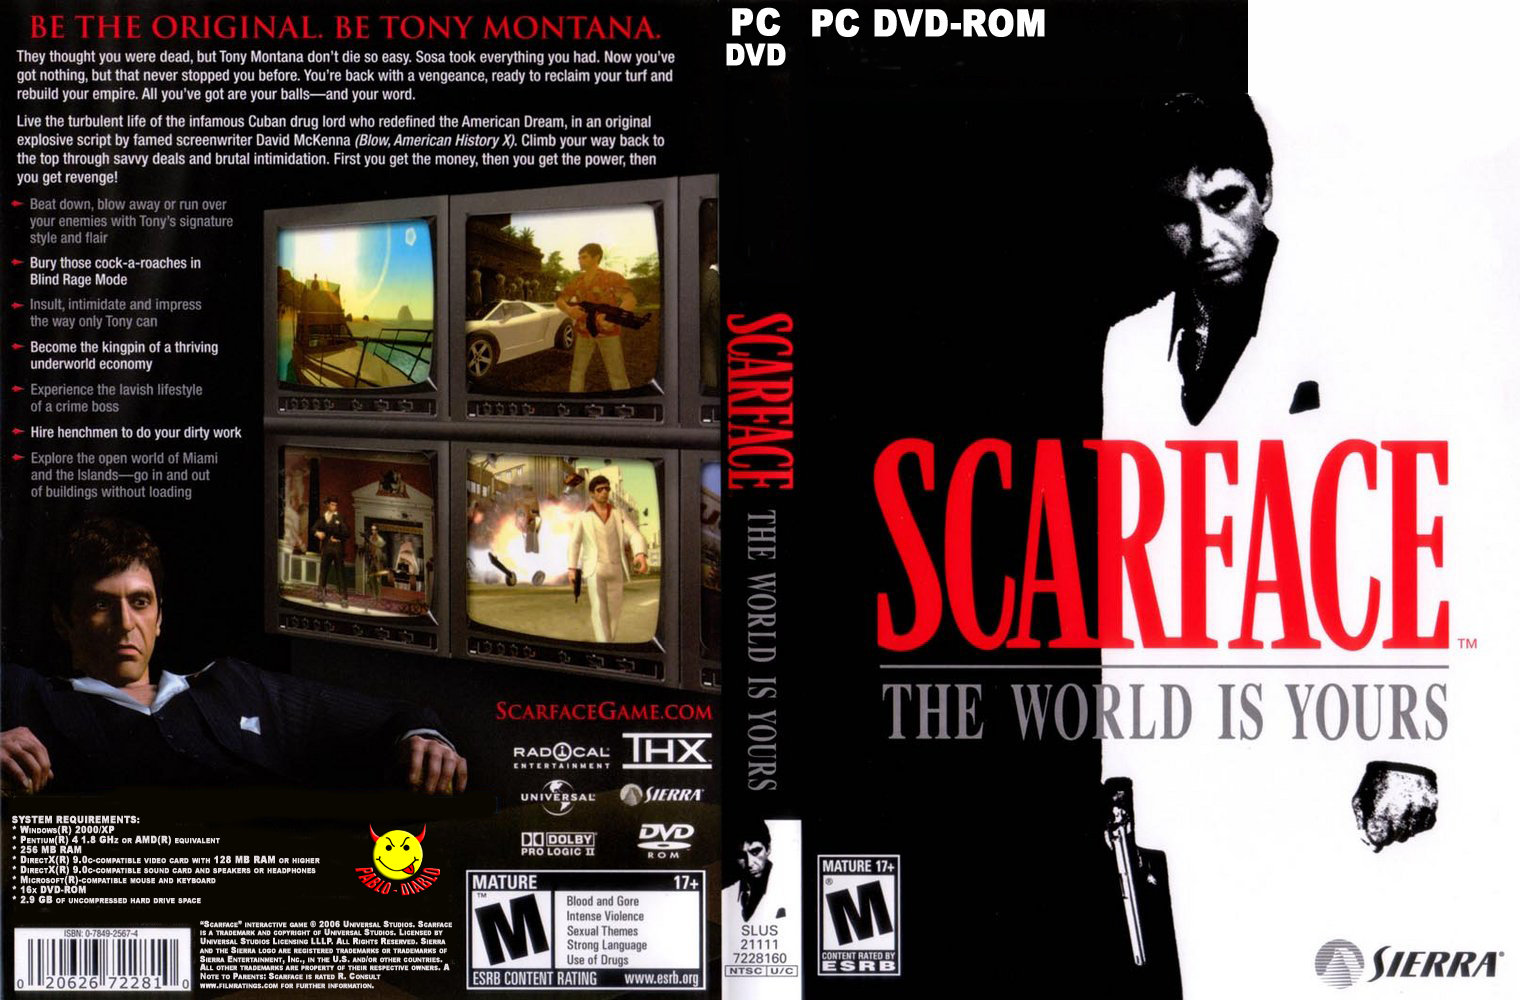 Scarface: The World Is Yours - Wikipedia